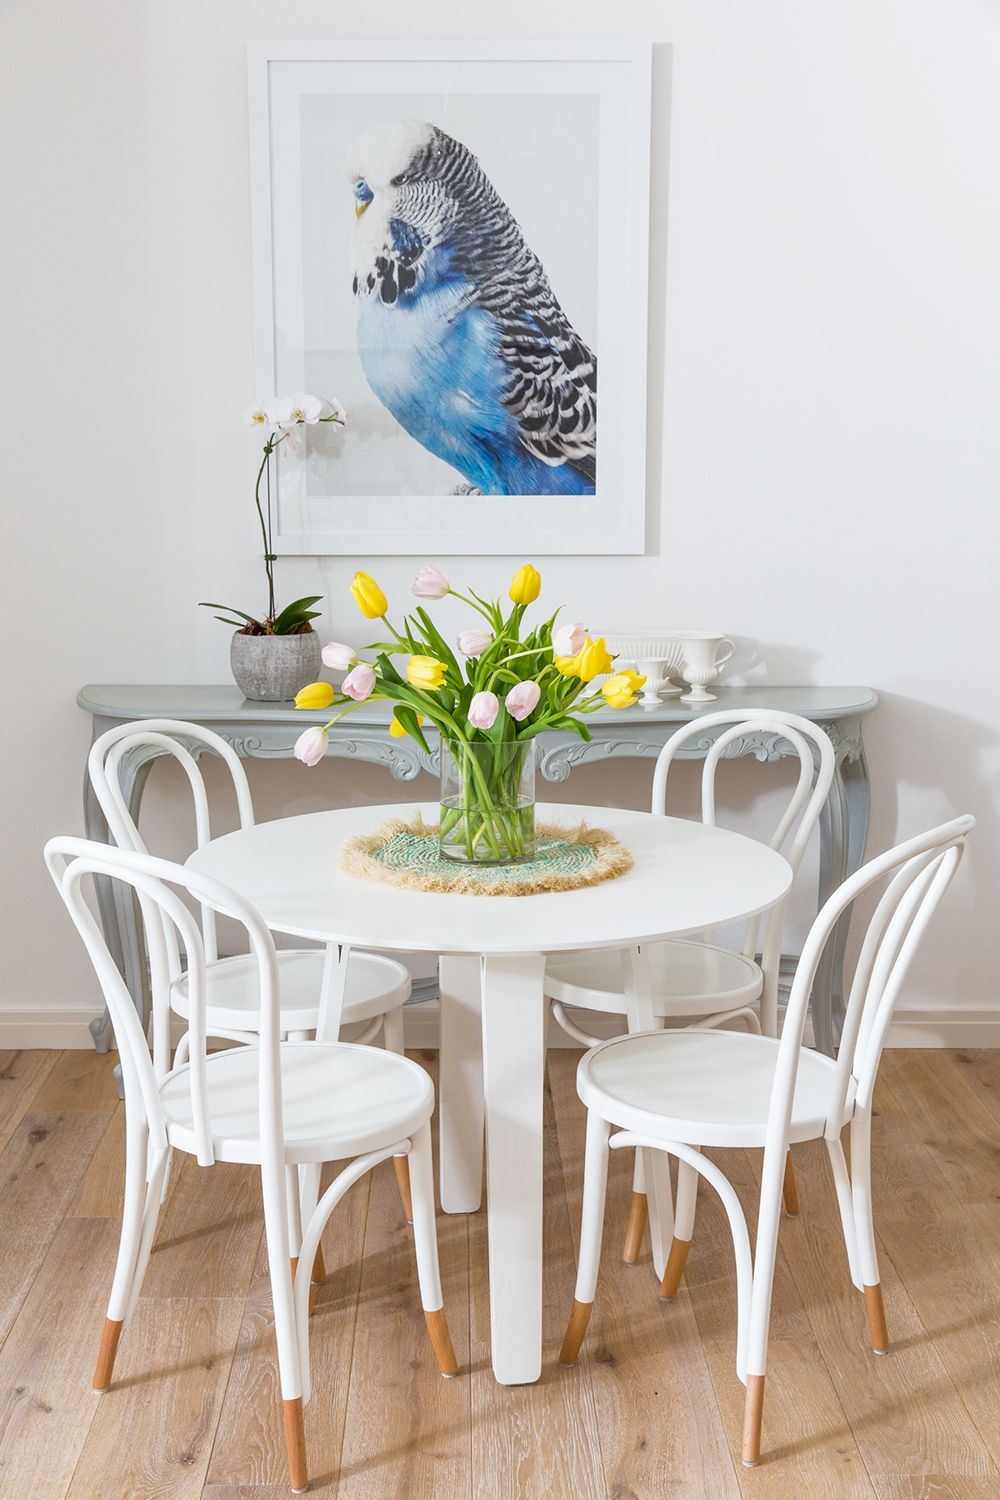 coastal style scandi by the sea gorgeous home decor cuisine salle a manger